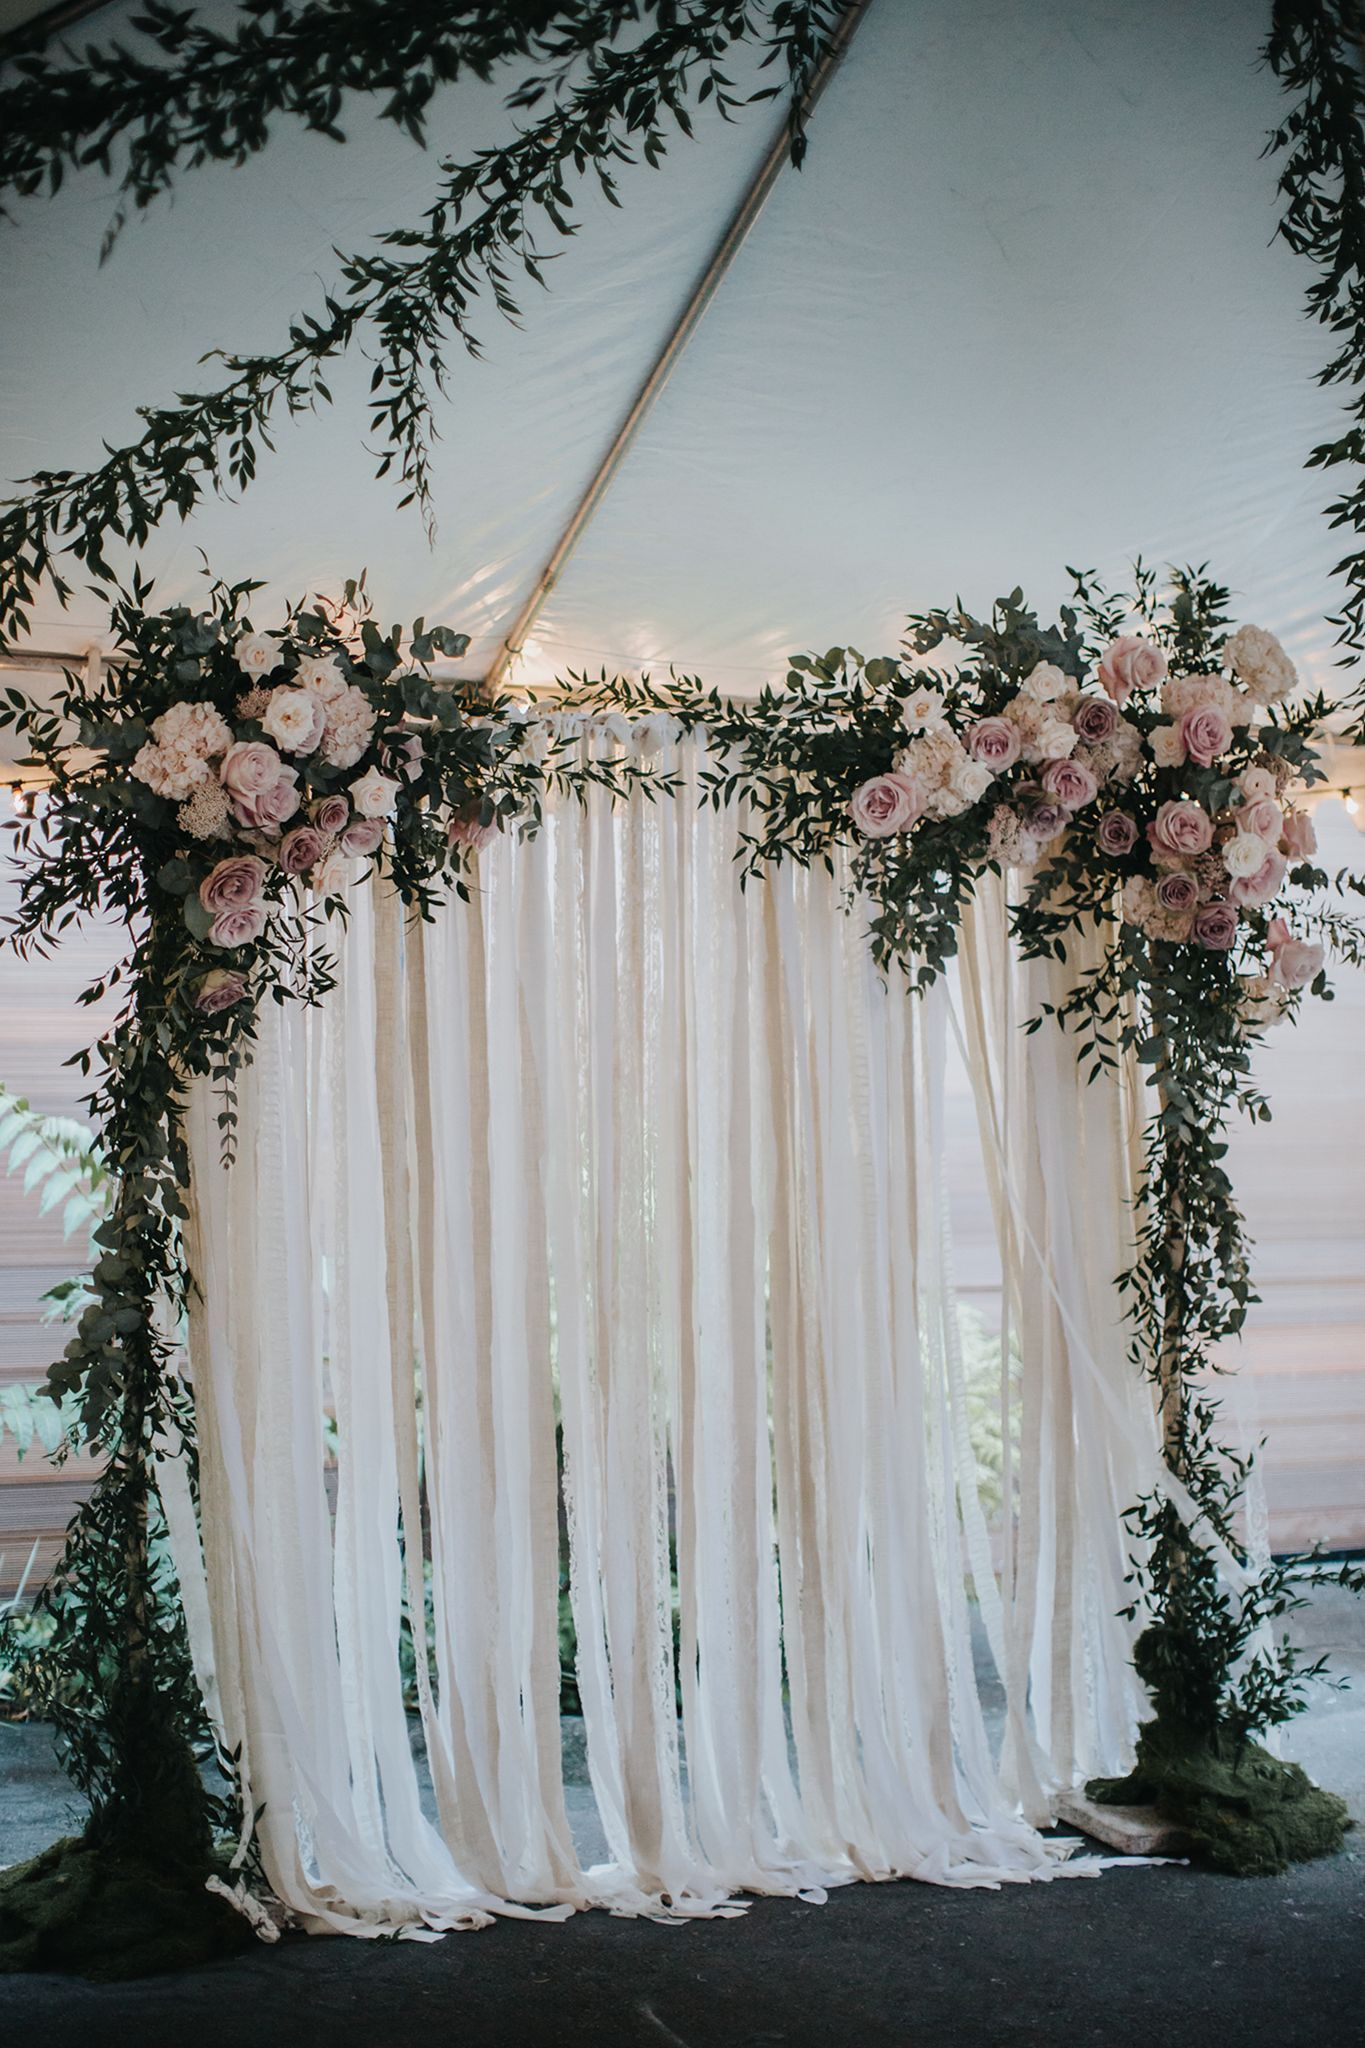 45 easy make wedding backdrop ideas that you can make it self 45 easy make wedding backdrop ideas that you can make it self junglespirit Image collections